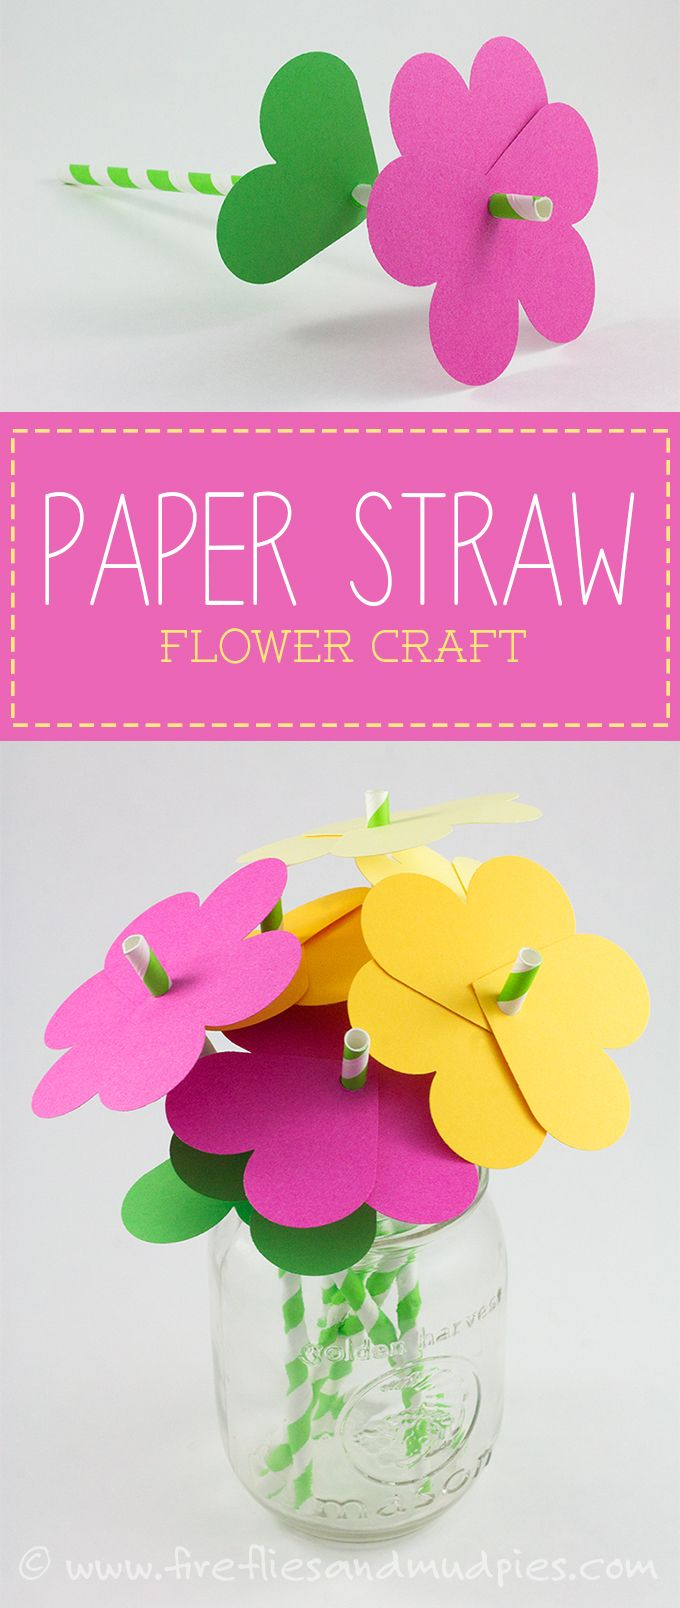 How to make simple paper heart flowers craft ideas pinterest paper straw flower craft perfect for spring fireflies and mud pies mightylinksfo